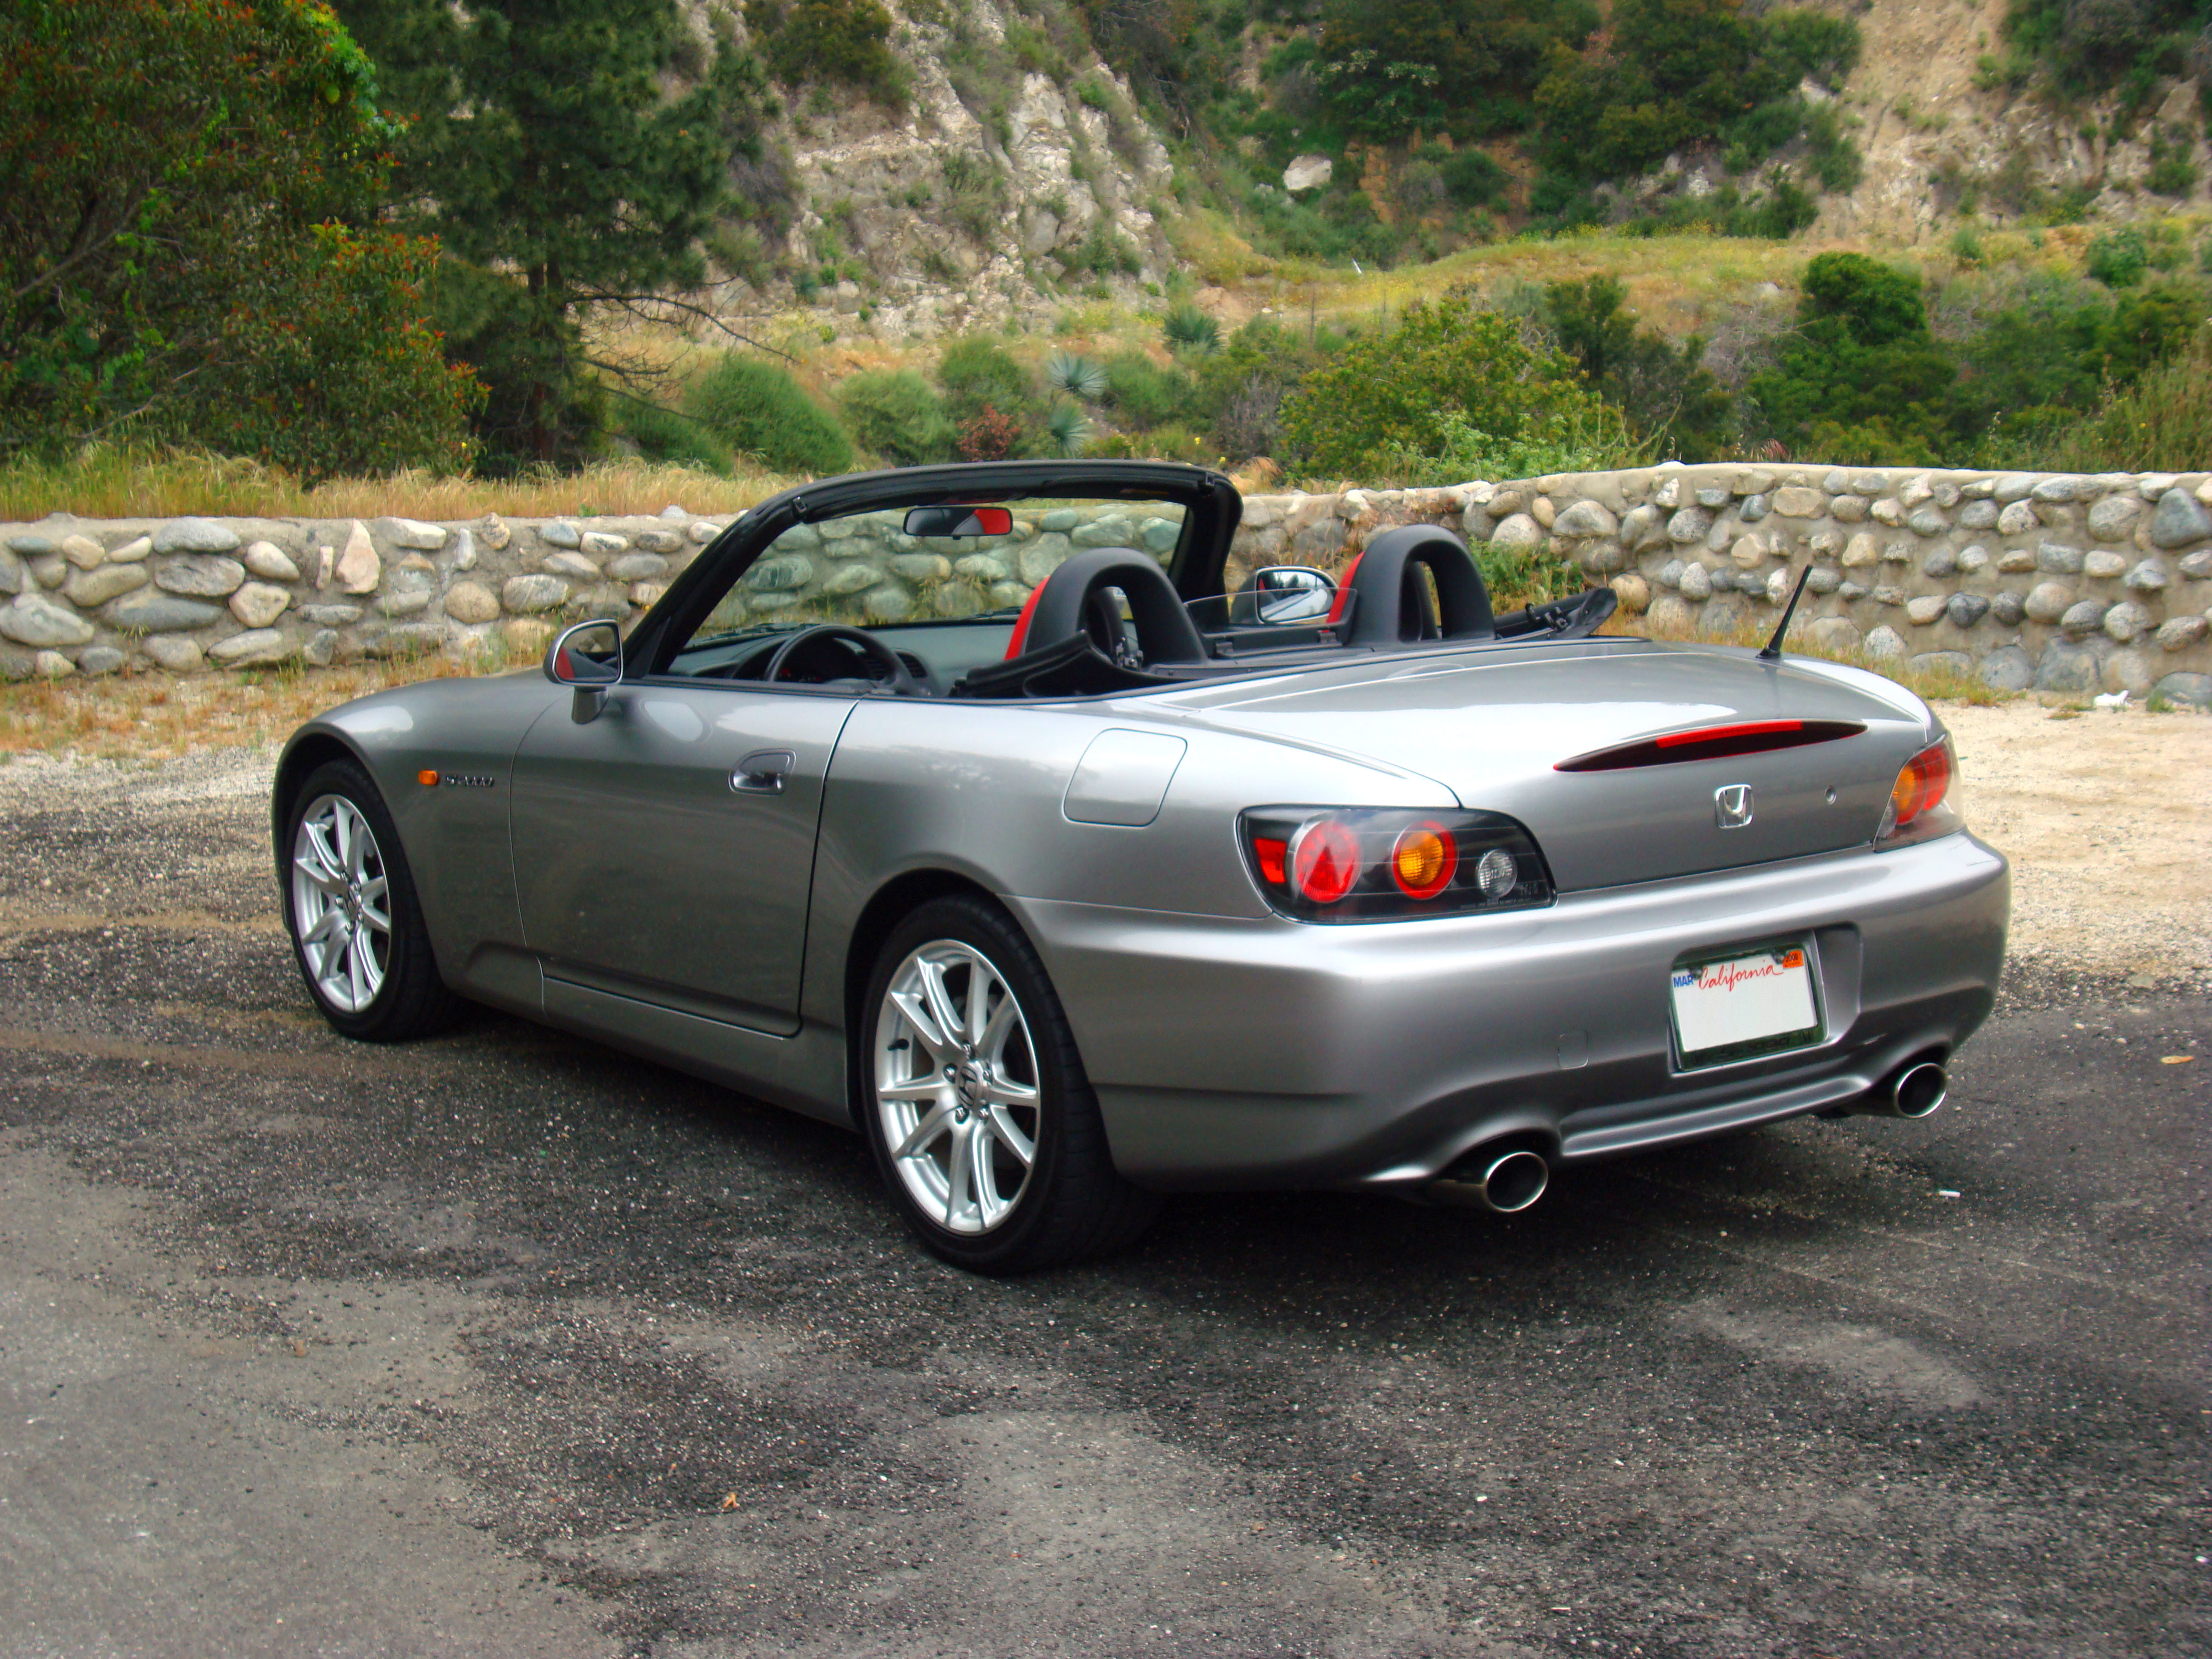 honda s2000 pictures #9